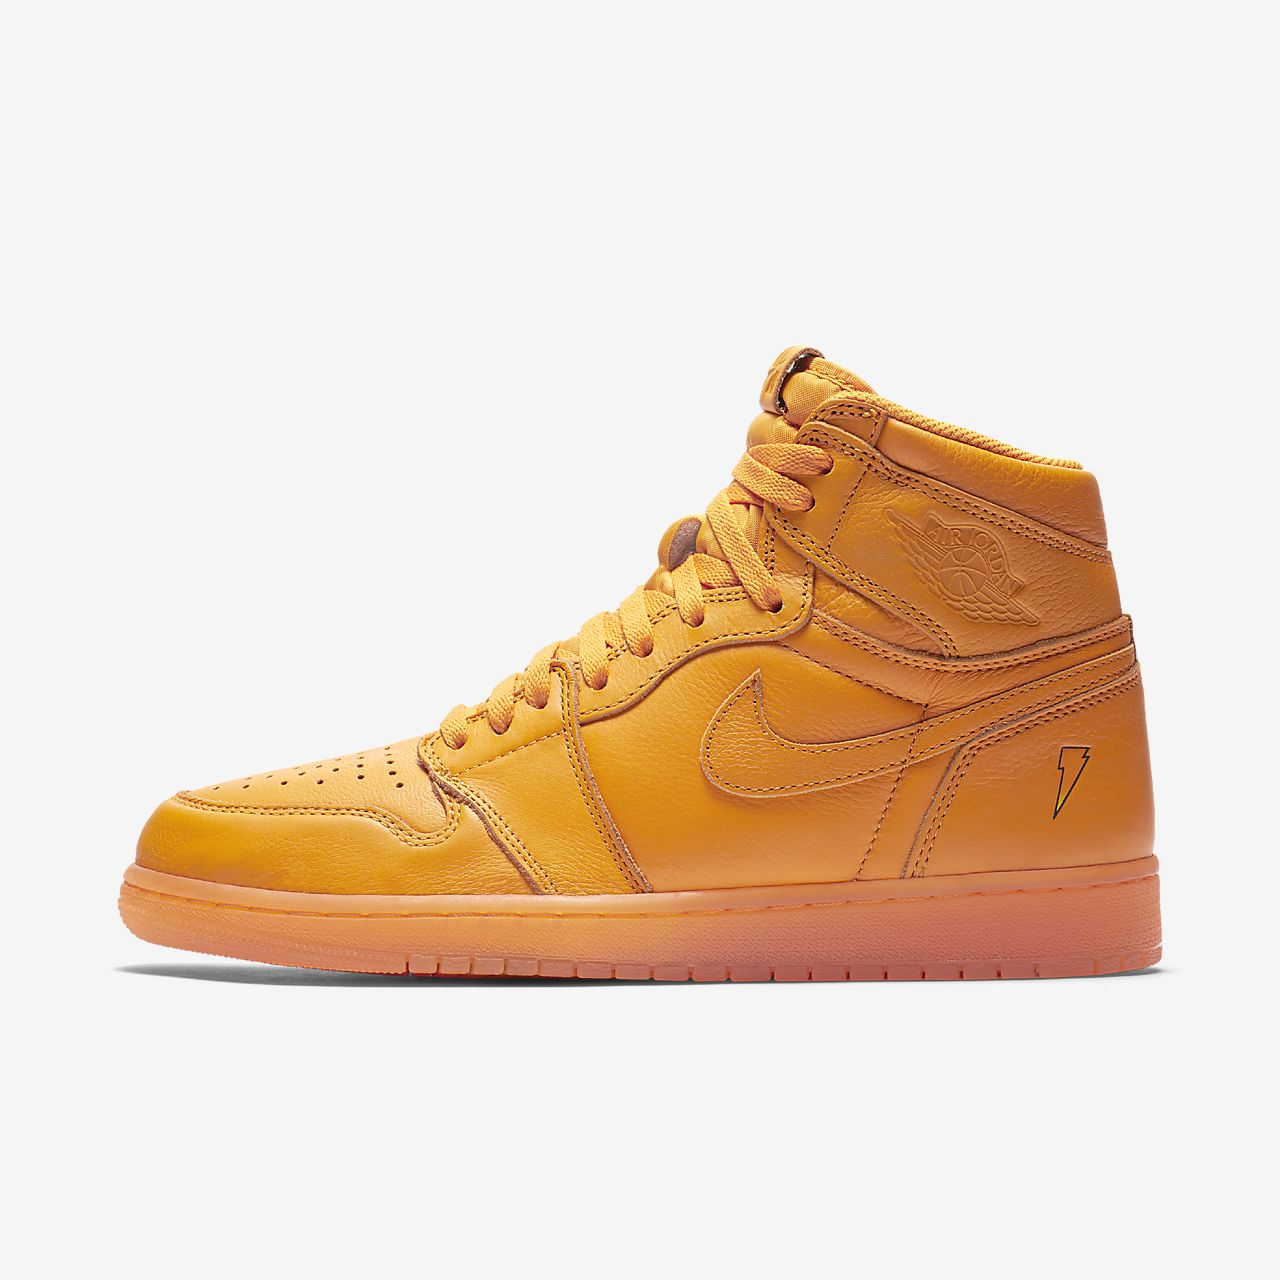 4dfccfe0edb34 Air Jordan 1 Retro High OG  Orange  Men s Shoe. Nike.com AU